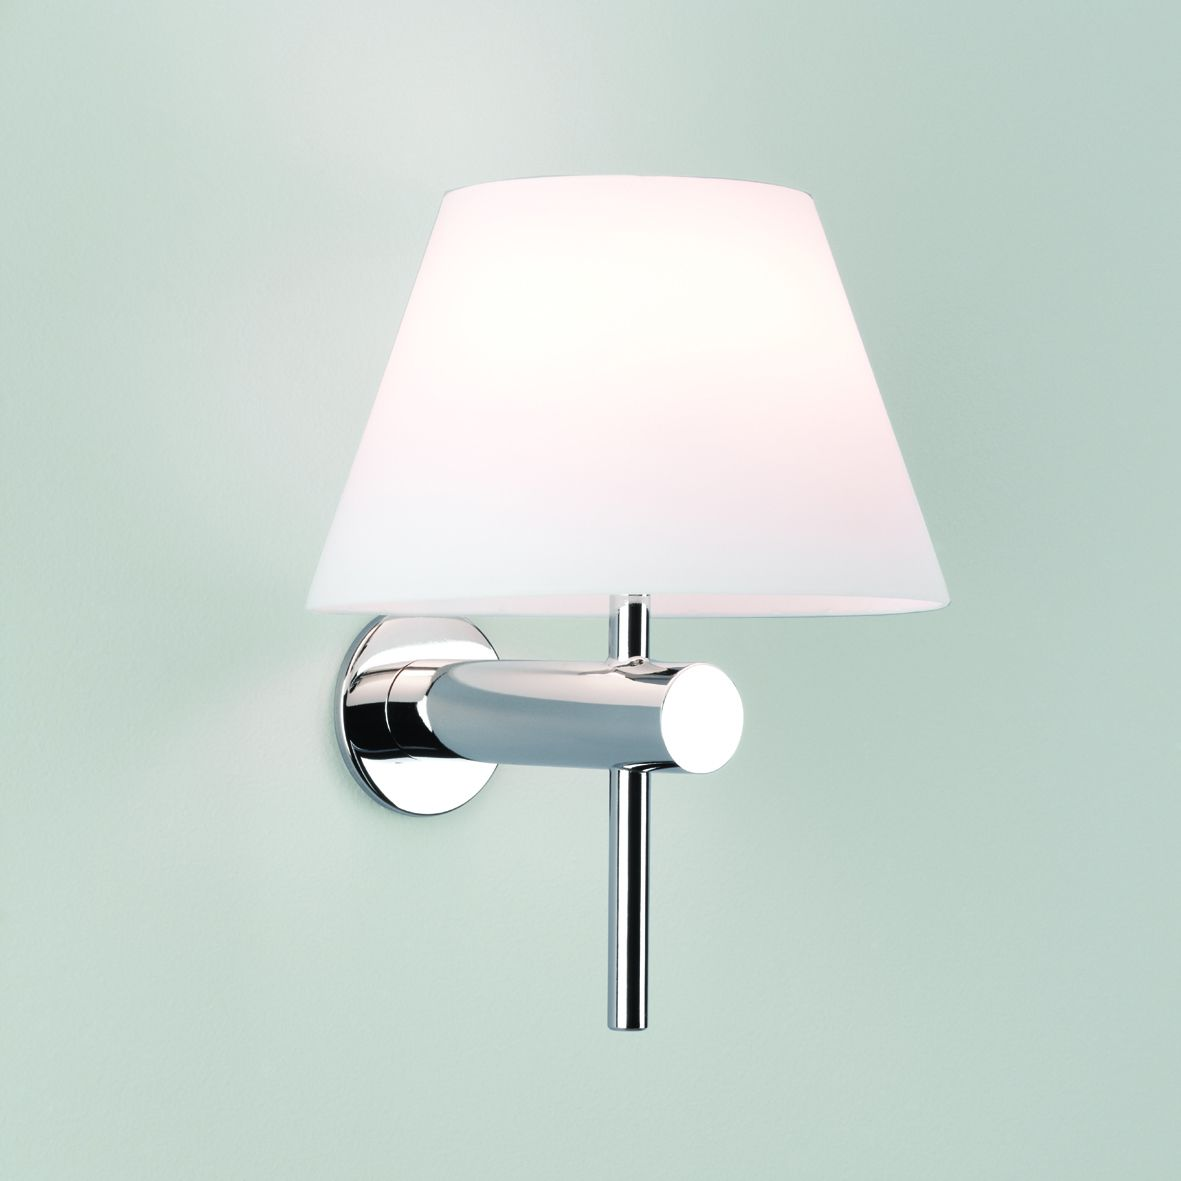 Wall lamps - lighting fixtures that are mounted on walls Warisan Lighting